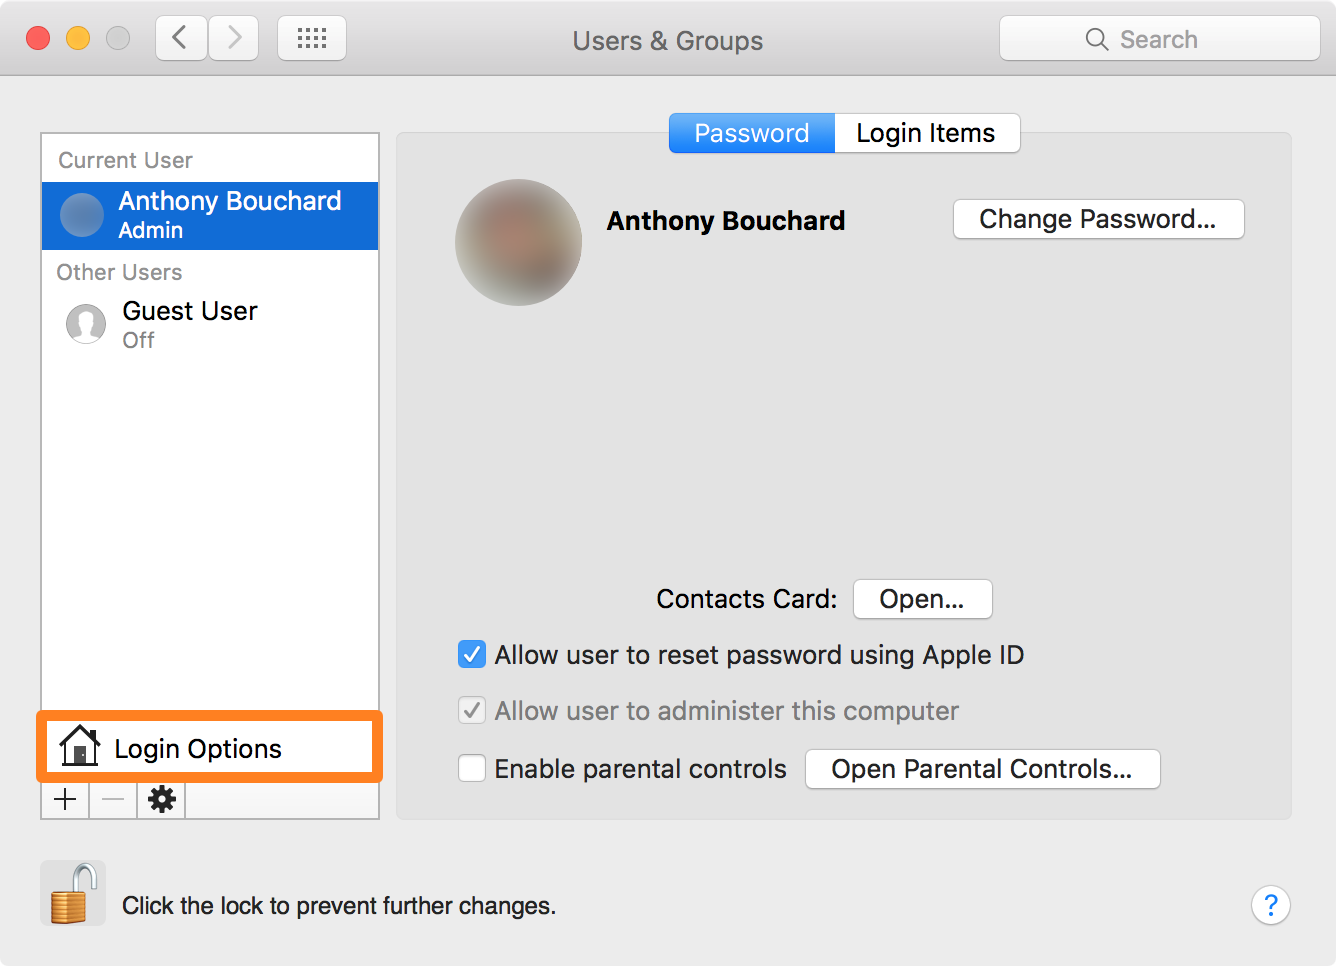 OS X Users and Groups Settings Login Options